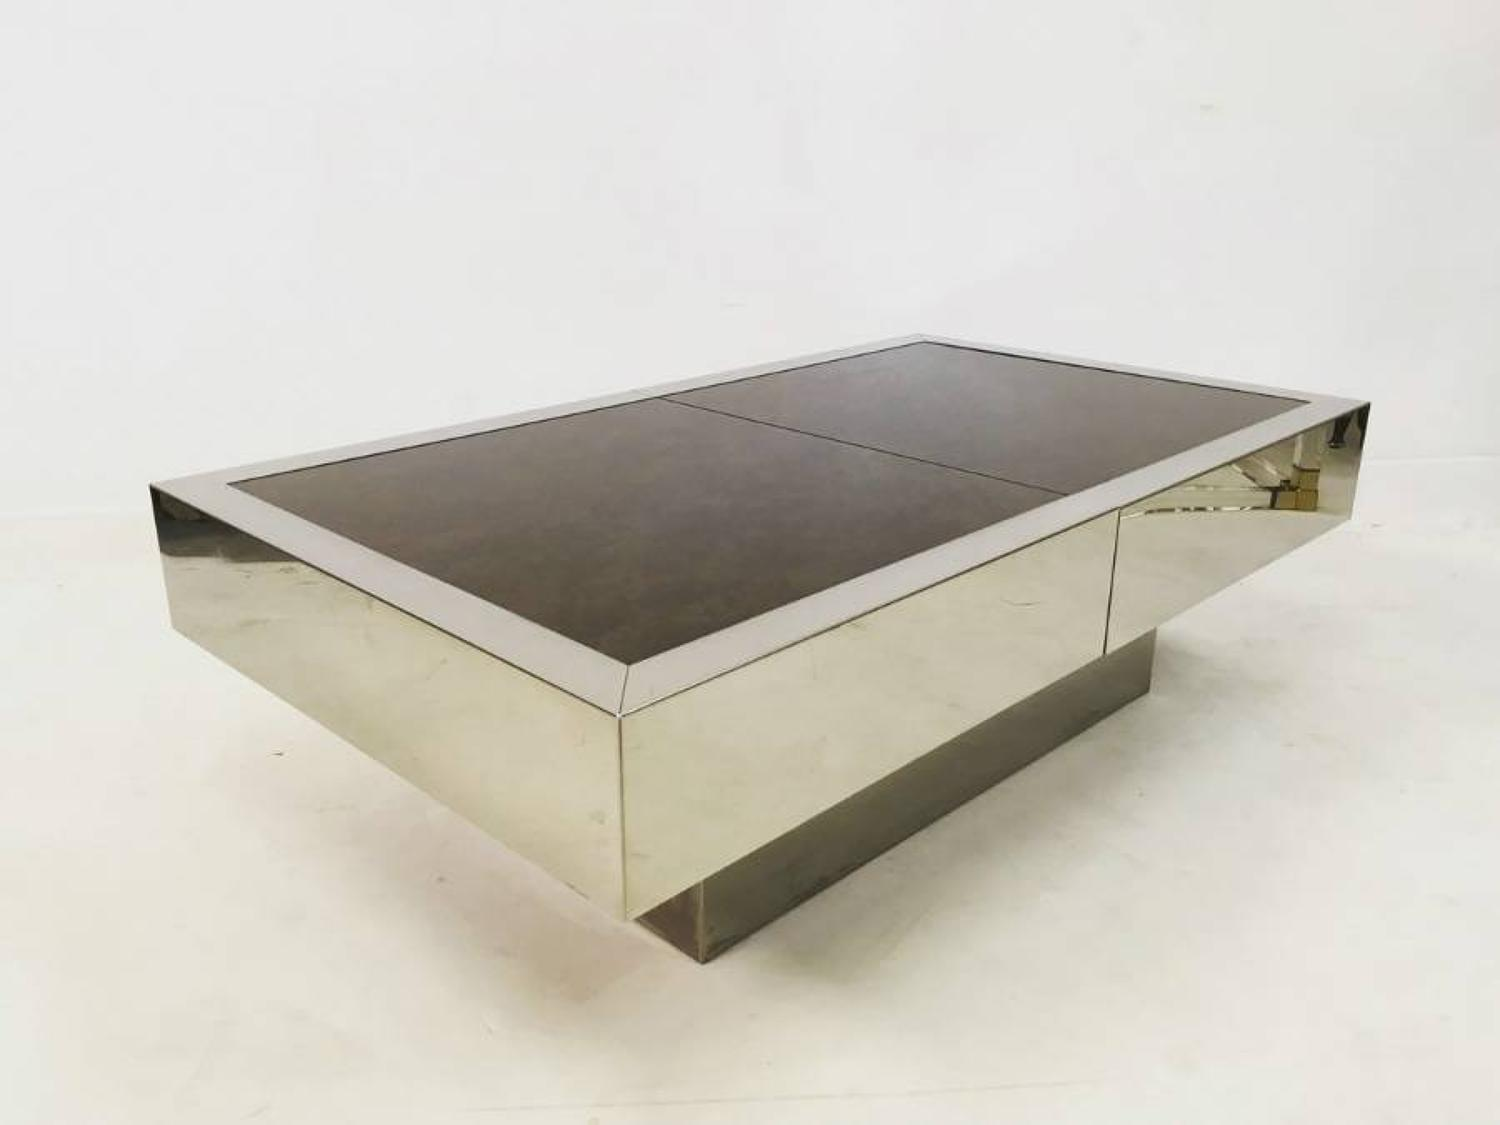 Sliding dry bar coffee table by Willy Rizzo